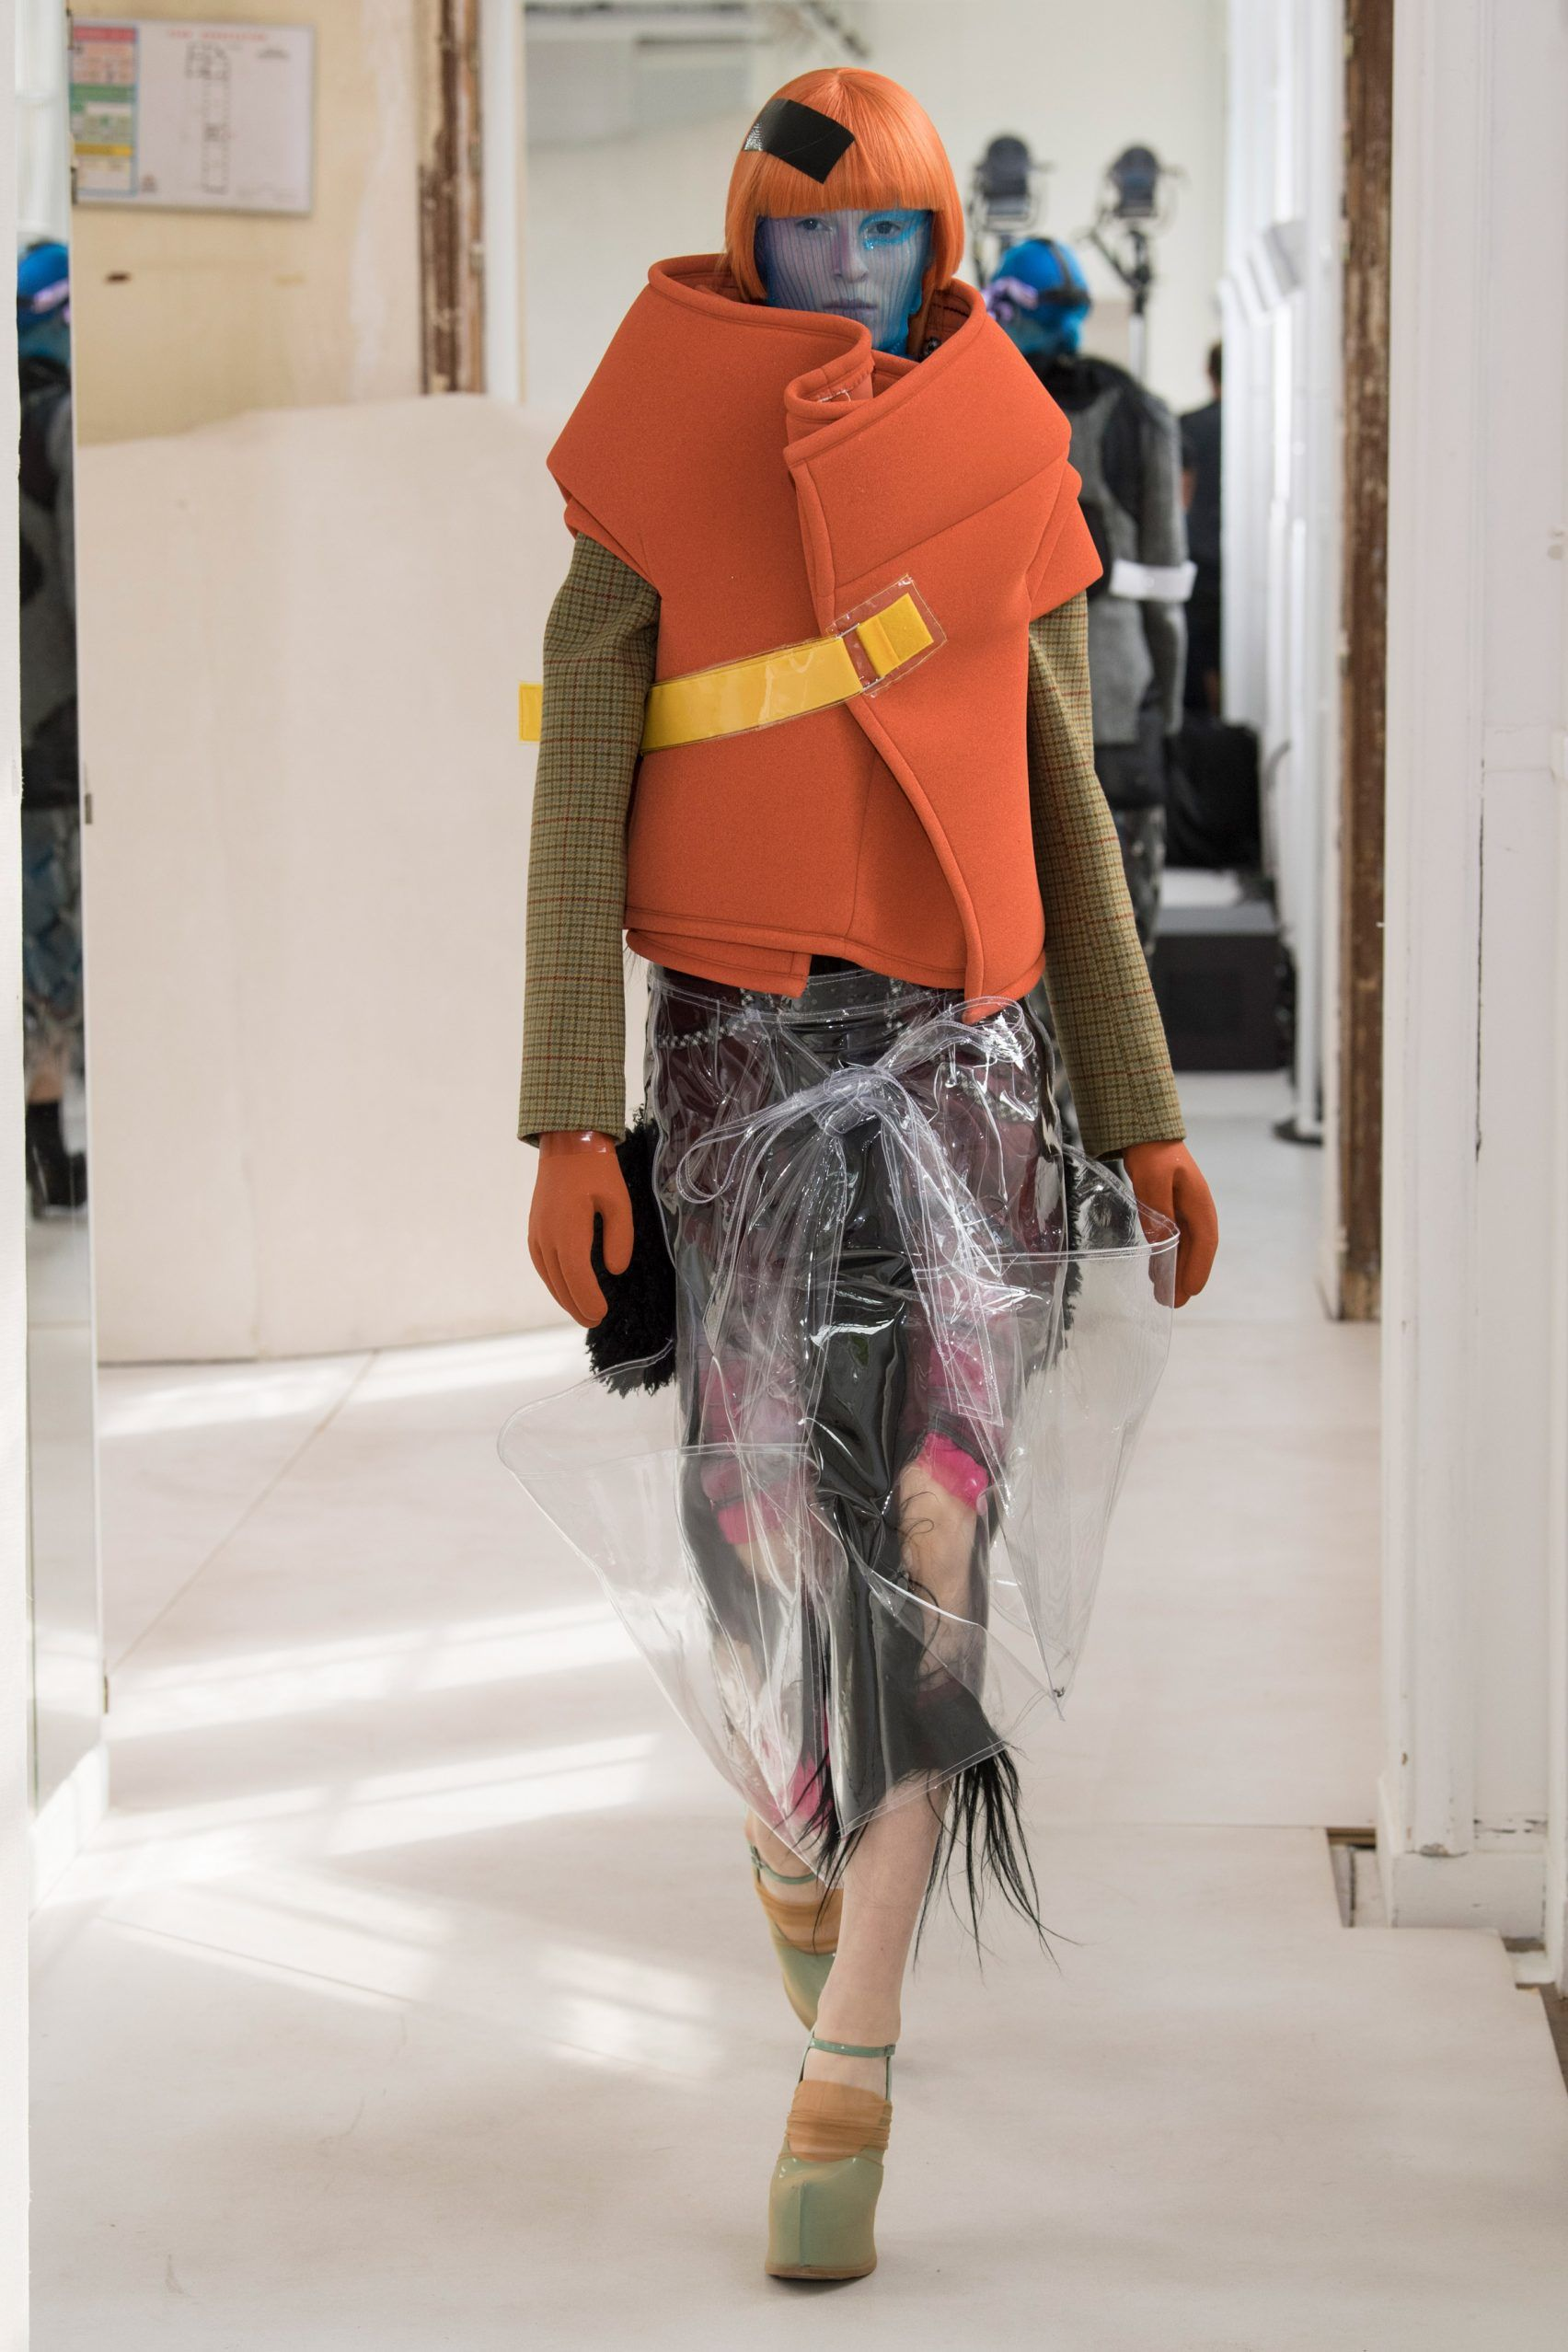 753e9ddb3 Maison Margiela's Artisanal couture collection is designed for